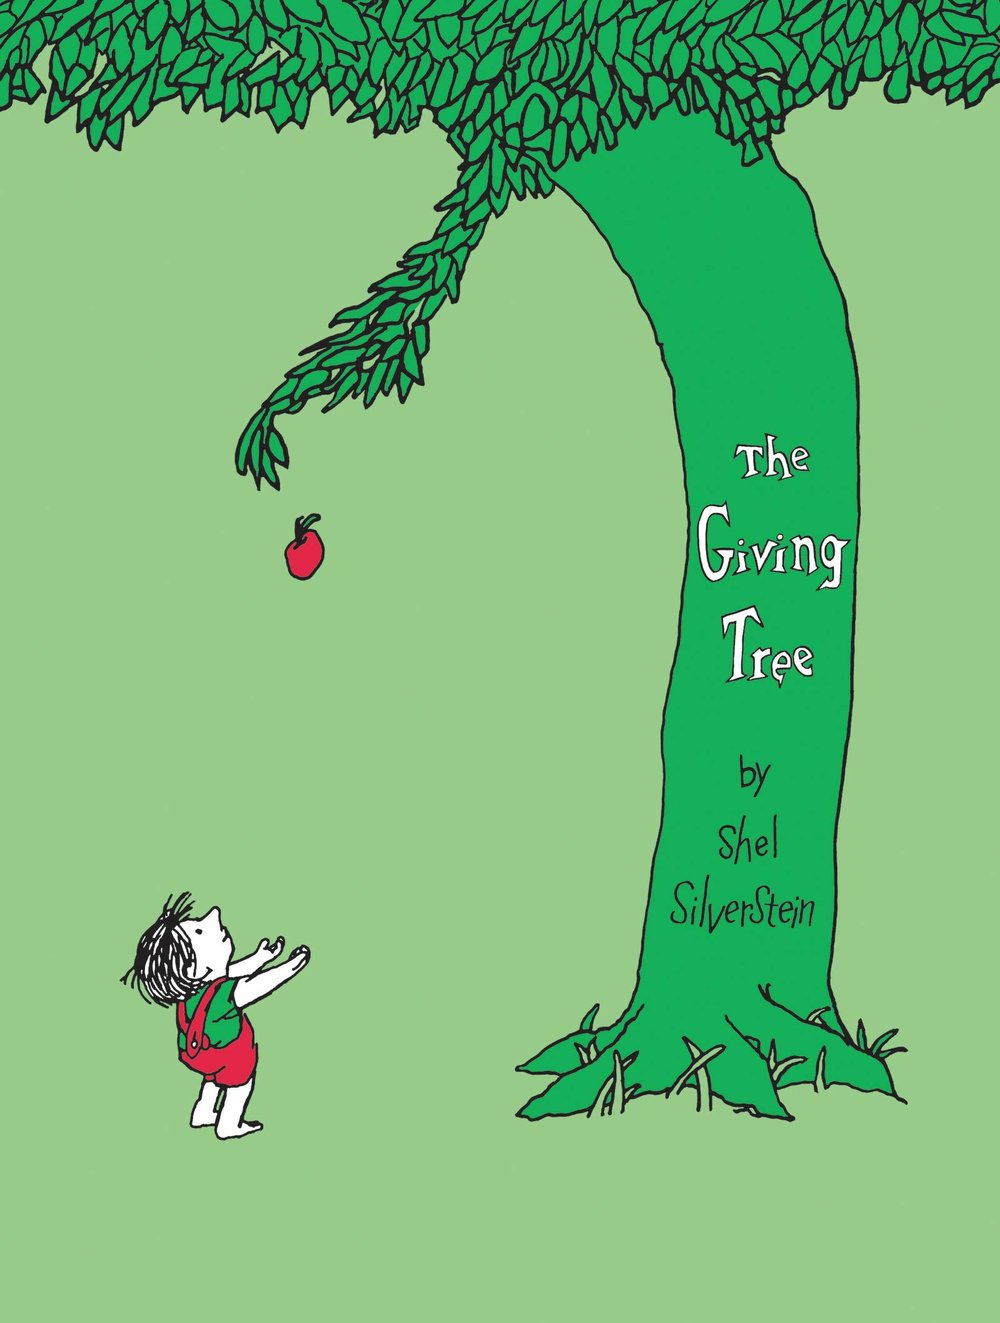 the things that always me cry - The Giving Tree by Shel Silverstein.jpg